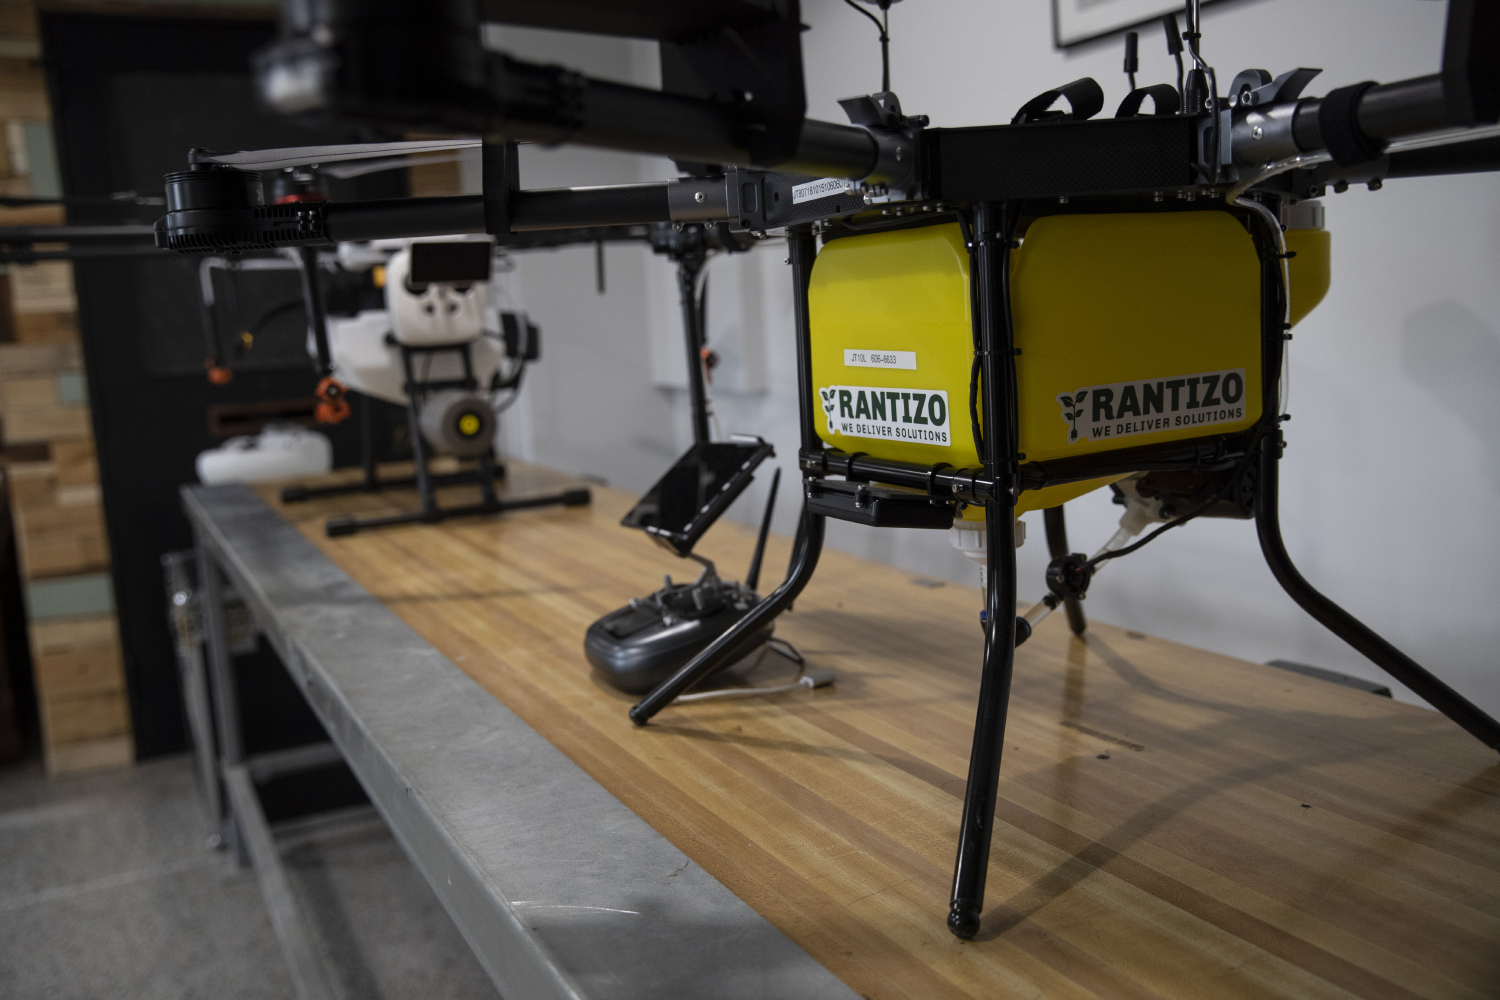 Rantizo+drones+sit+on+display+during+Lt.+Gov.+Adam+Gregg%27s+visit+with+Rantizo+in+downtown+Iowa+City+on+Feb.+25%2C+2019.+Rantizo+is+an+agricultural+start-up+that+uses+drones+to+spray+agrochemicals+by+spotting+certain+areas+with+anomalies.+